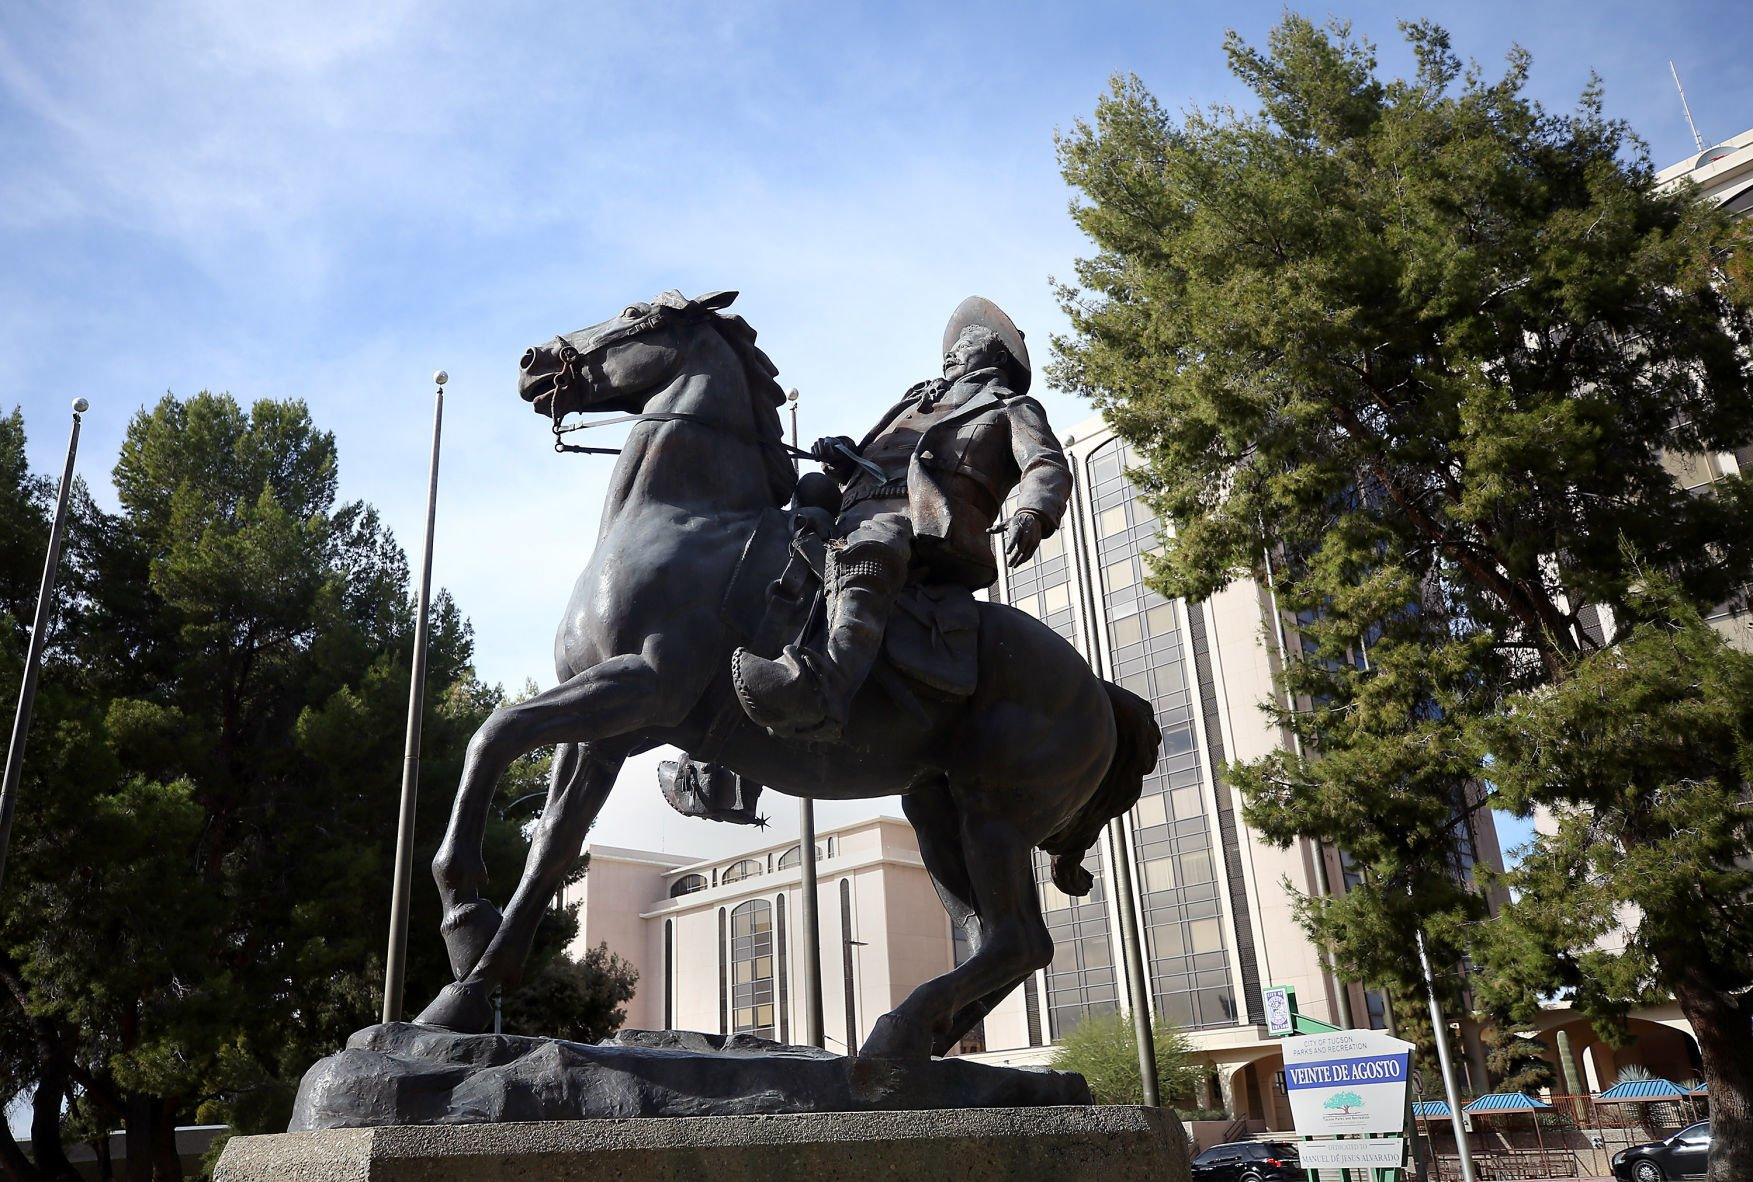 Latest request to remove Tucson's Pancho Villa statue rejected by arts council | Tucson.com